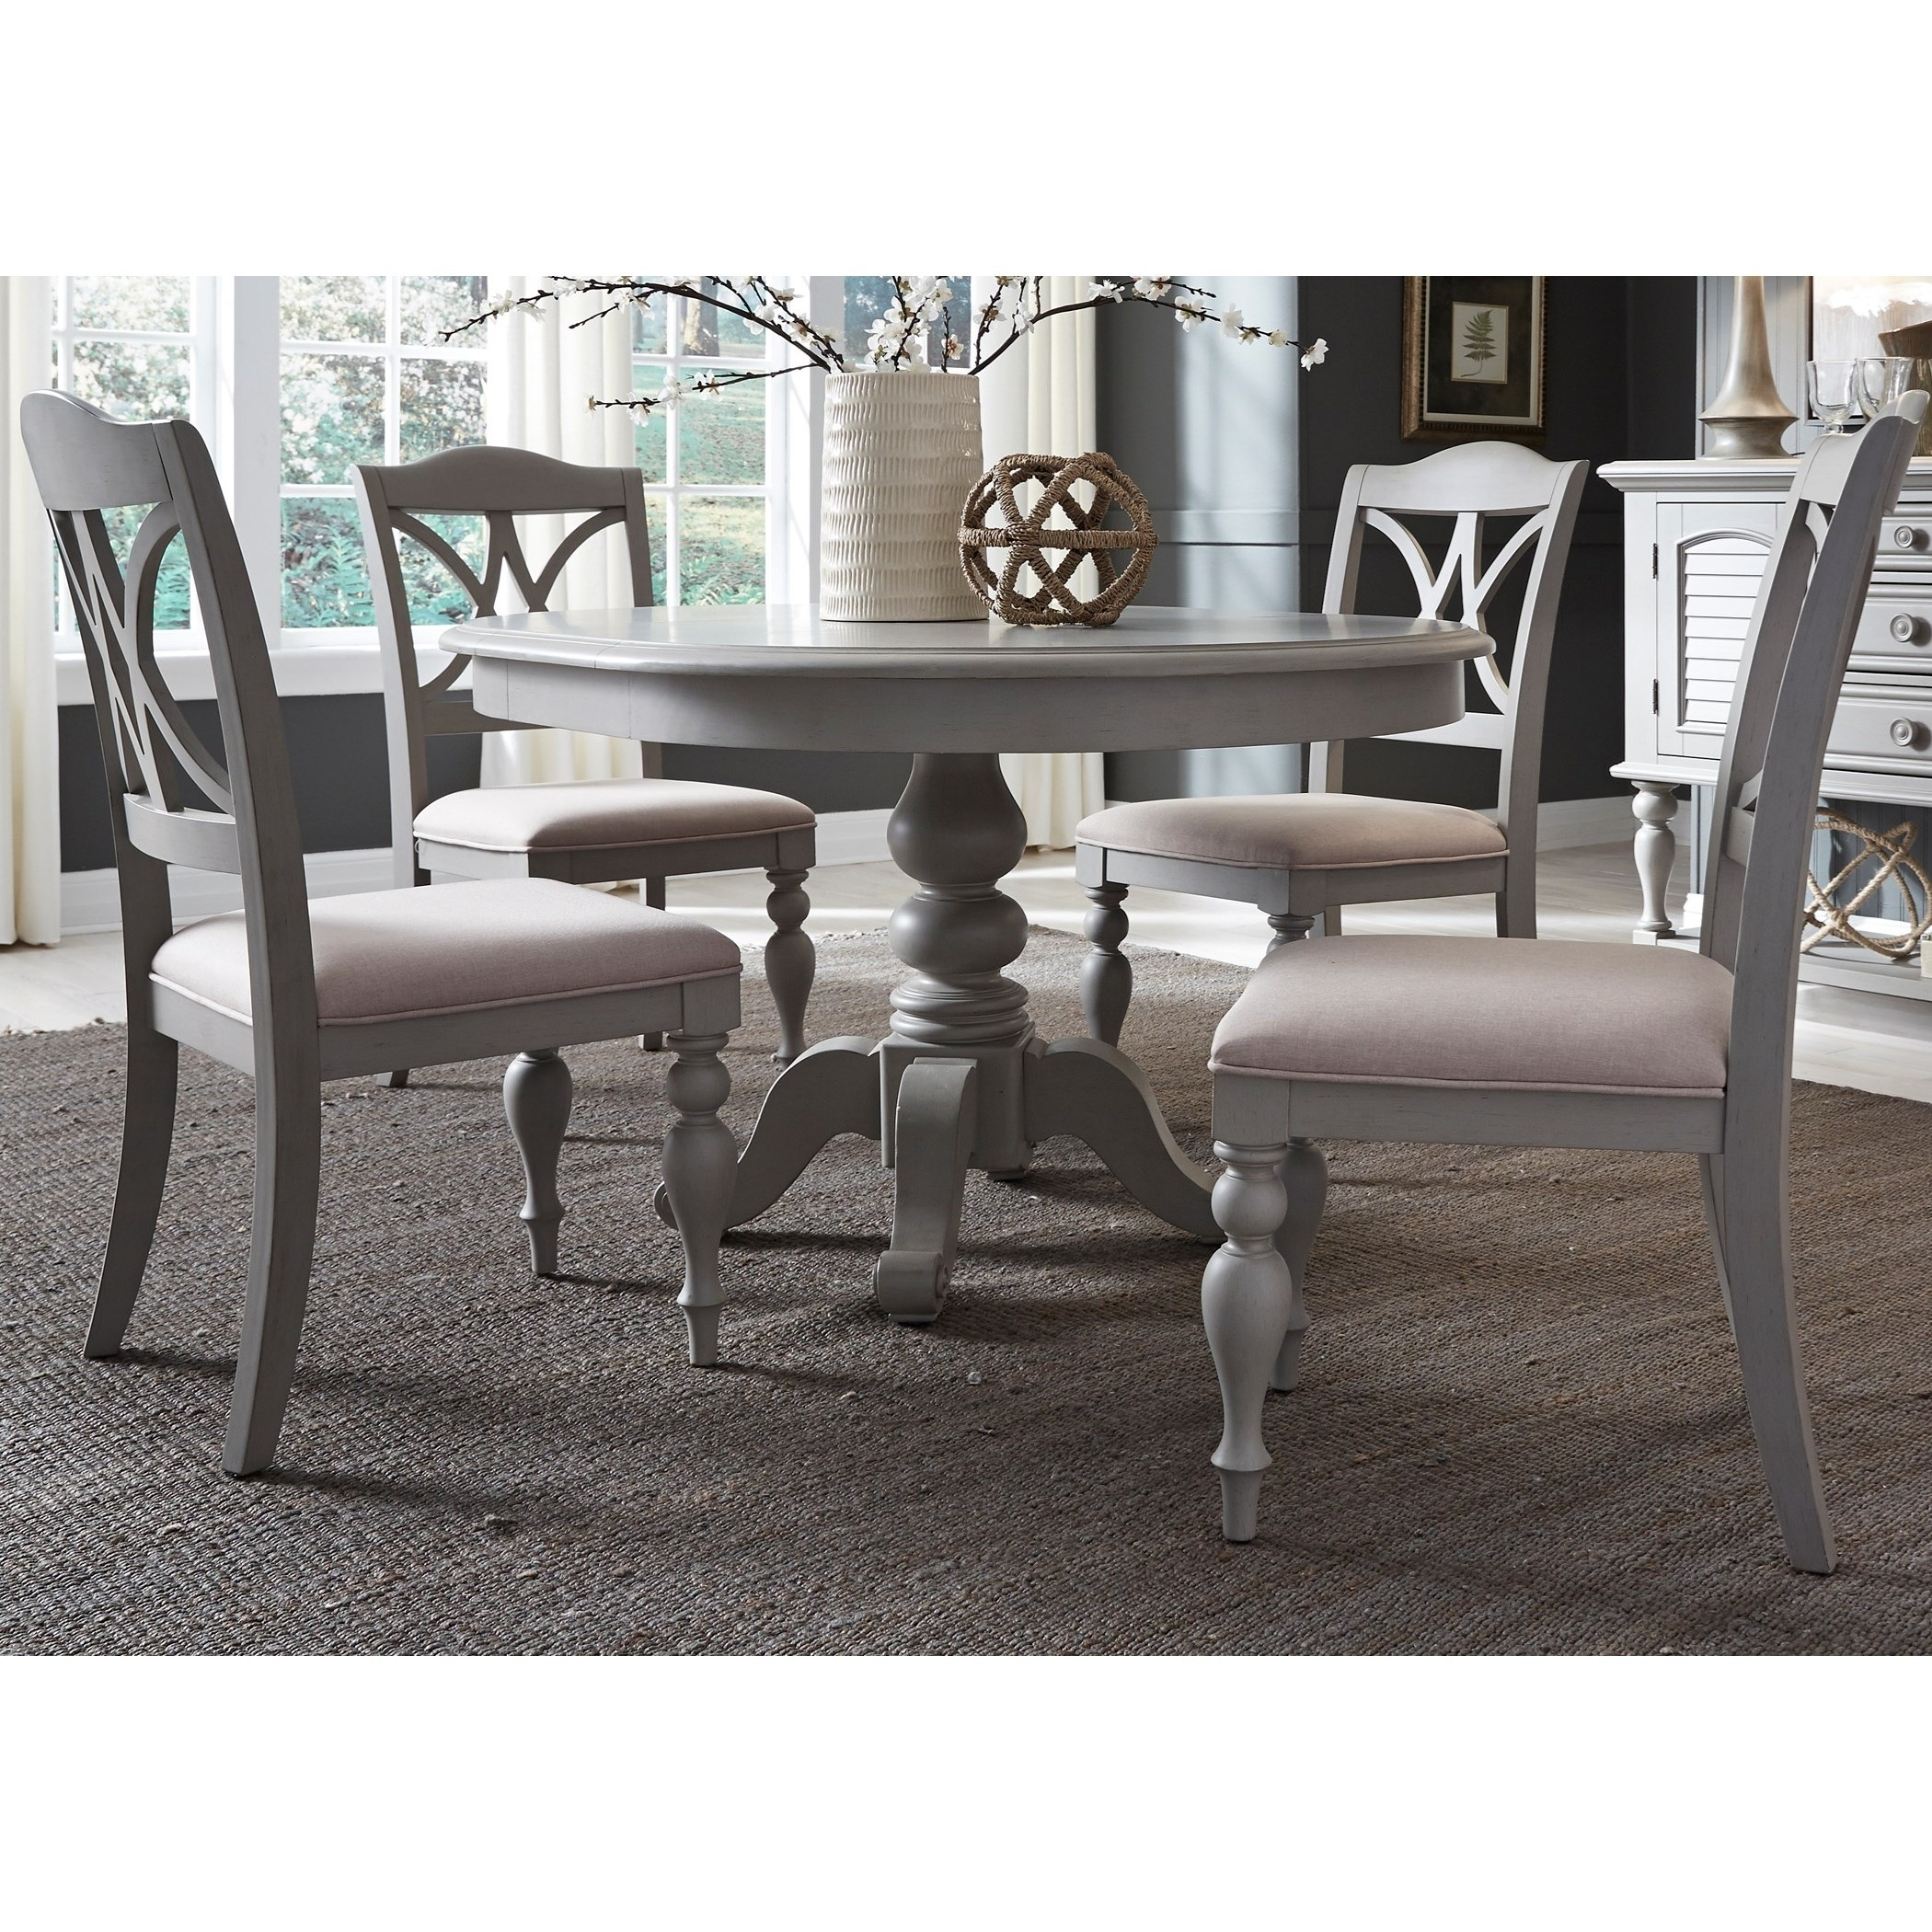 Lindy Dove Grey Side Chairs Throughout Well Known Liberty Furniture Summer House Dining 5 Piece Pedestal Table Set (View 9 of 20)